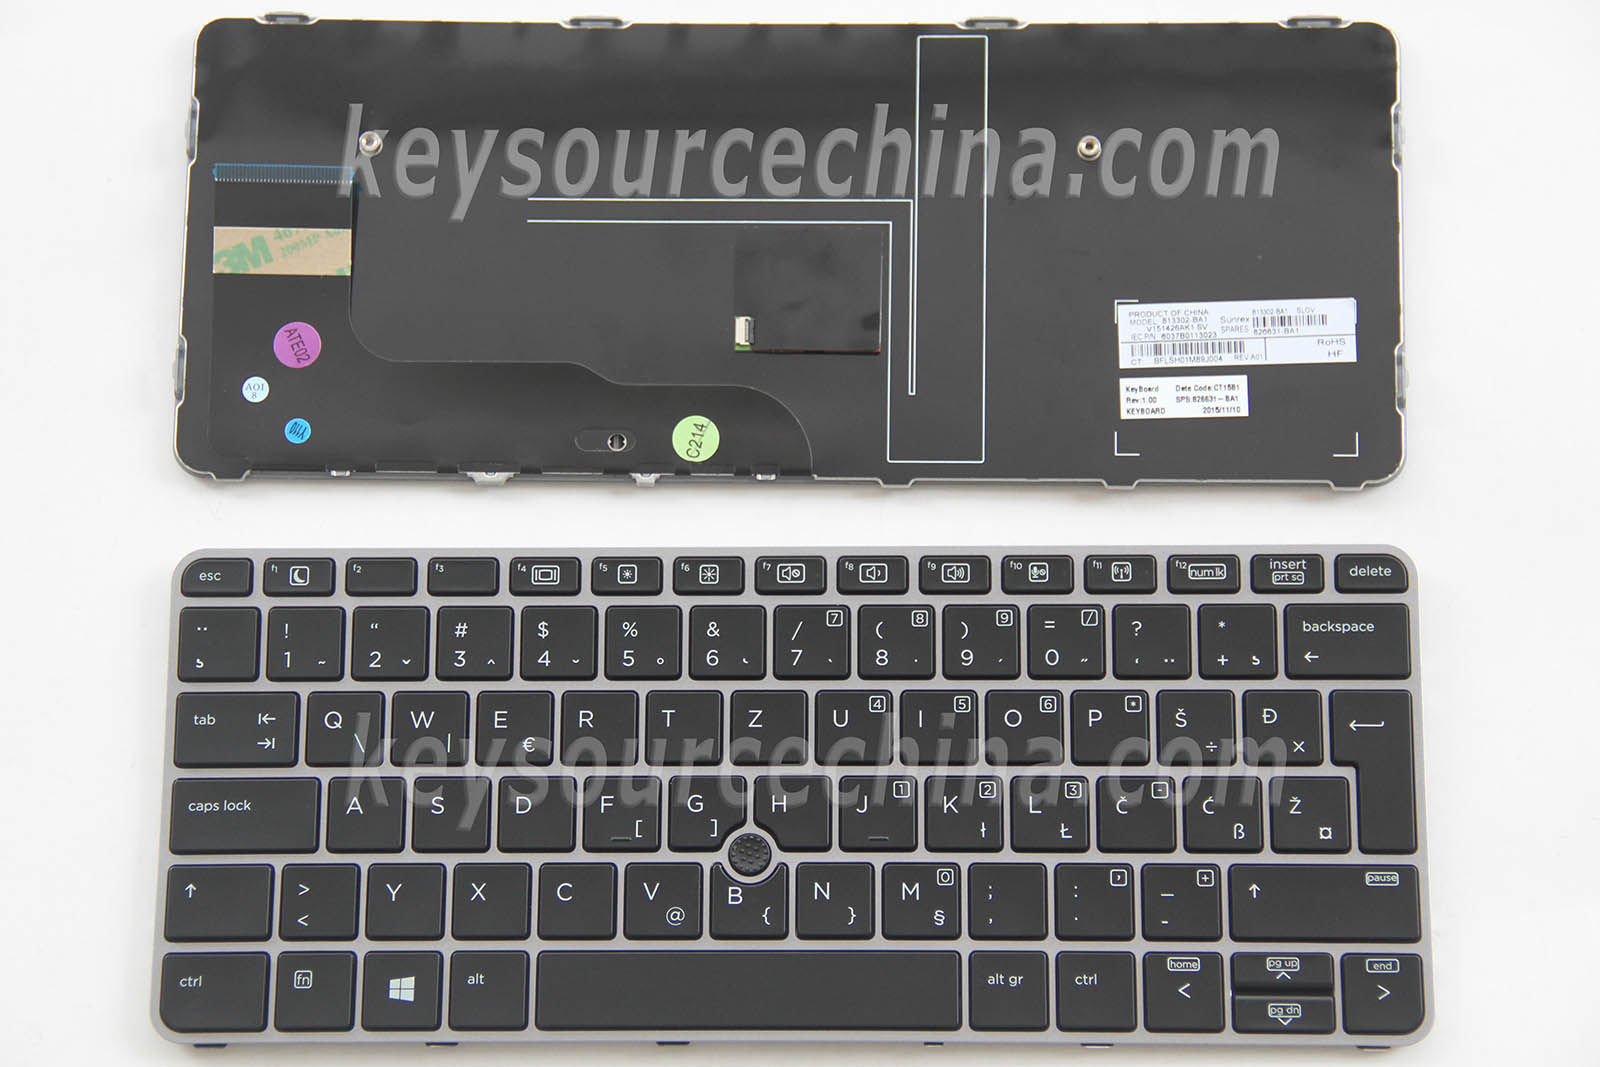 813302-BA1 HP EliteBook 725 G3 820 G3 725 G4 820 G4 Tipkovnica Slovenian Bosnian Croatian Serbian Laptop Keyboard